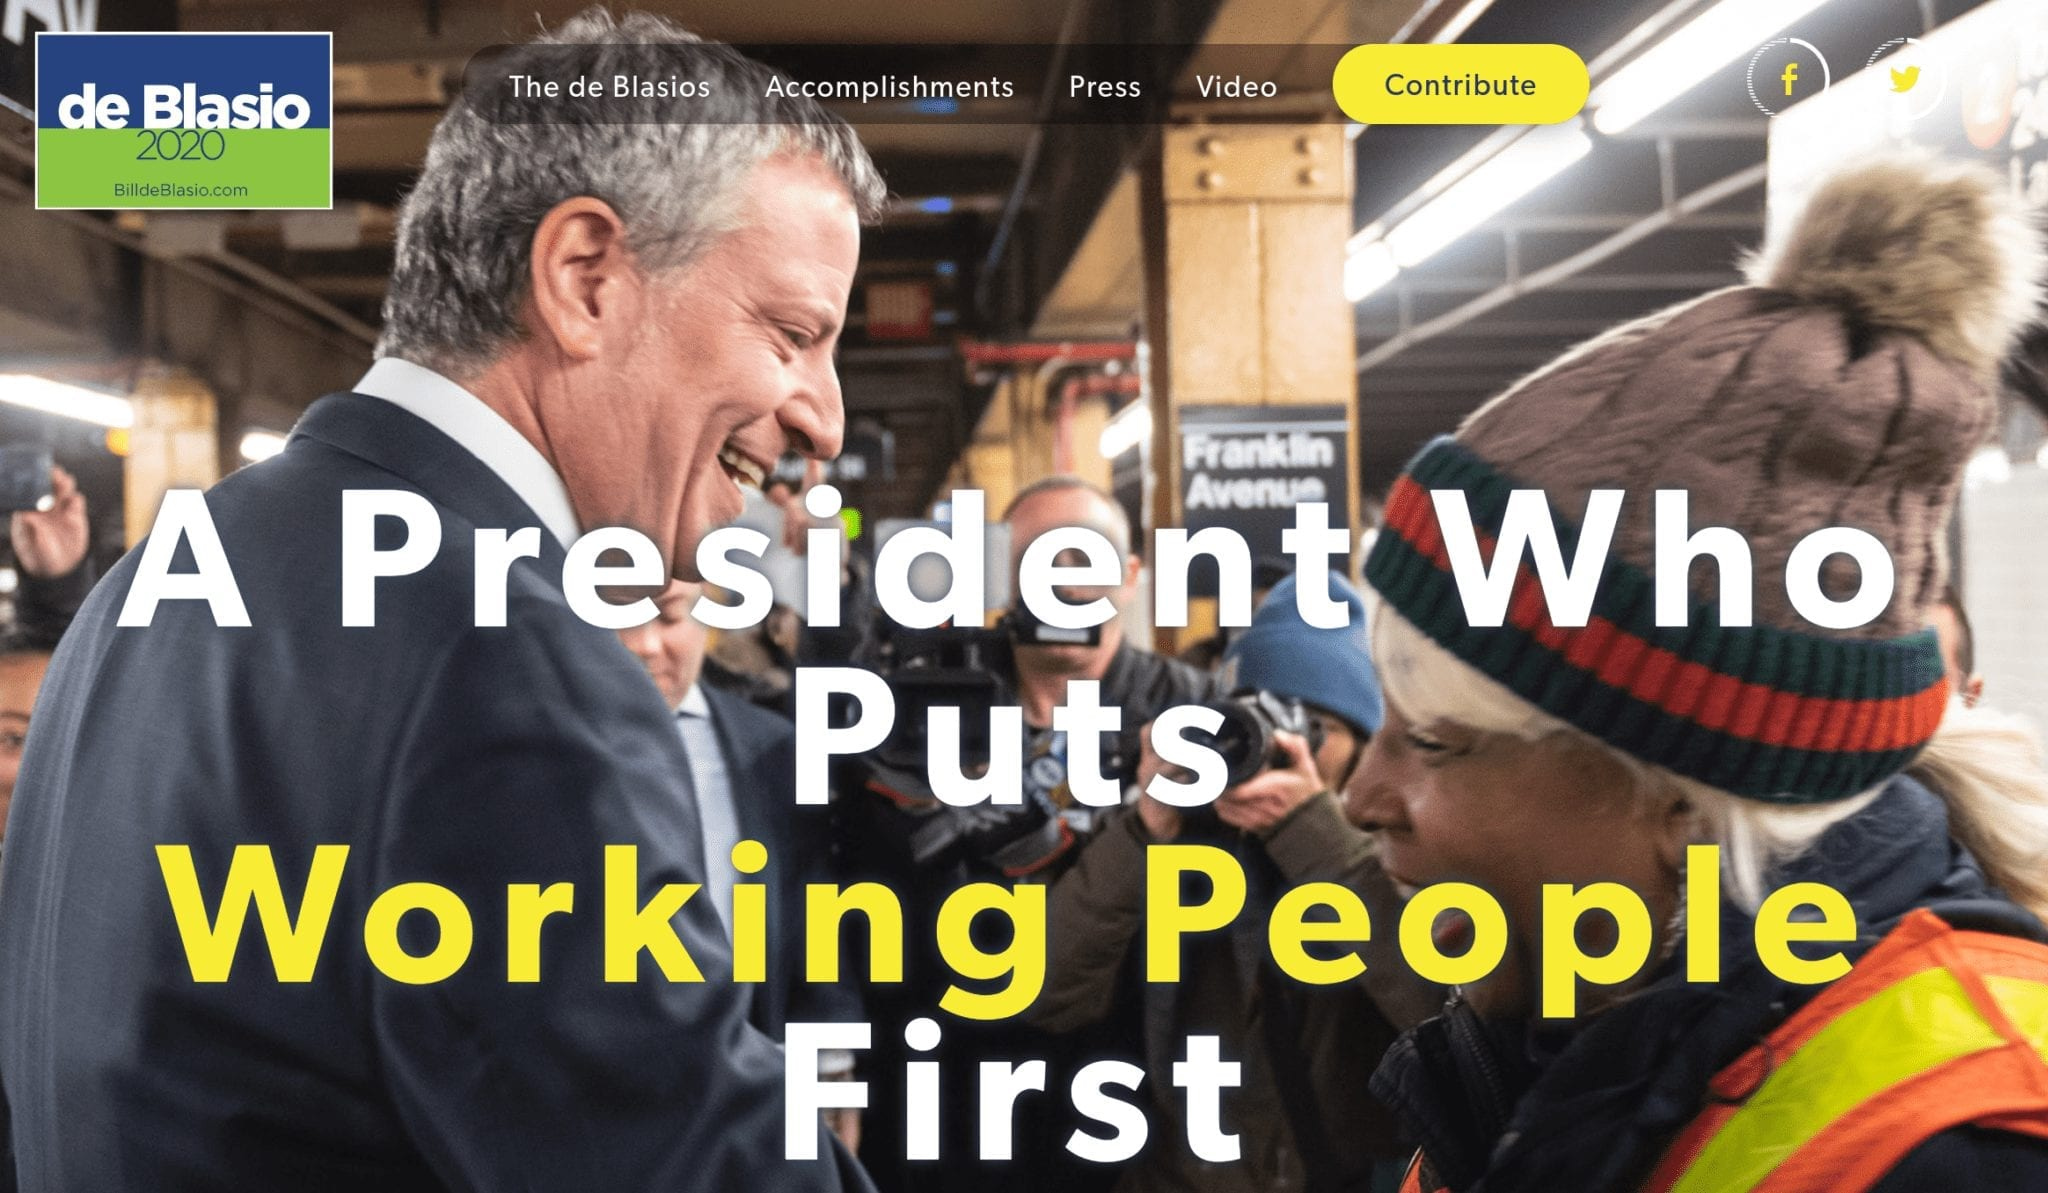 Bill de Blasio 2020 campaign website